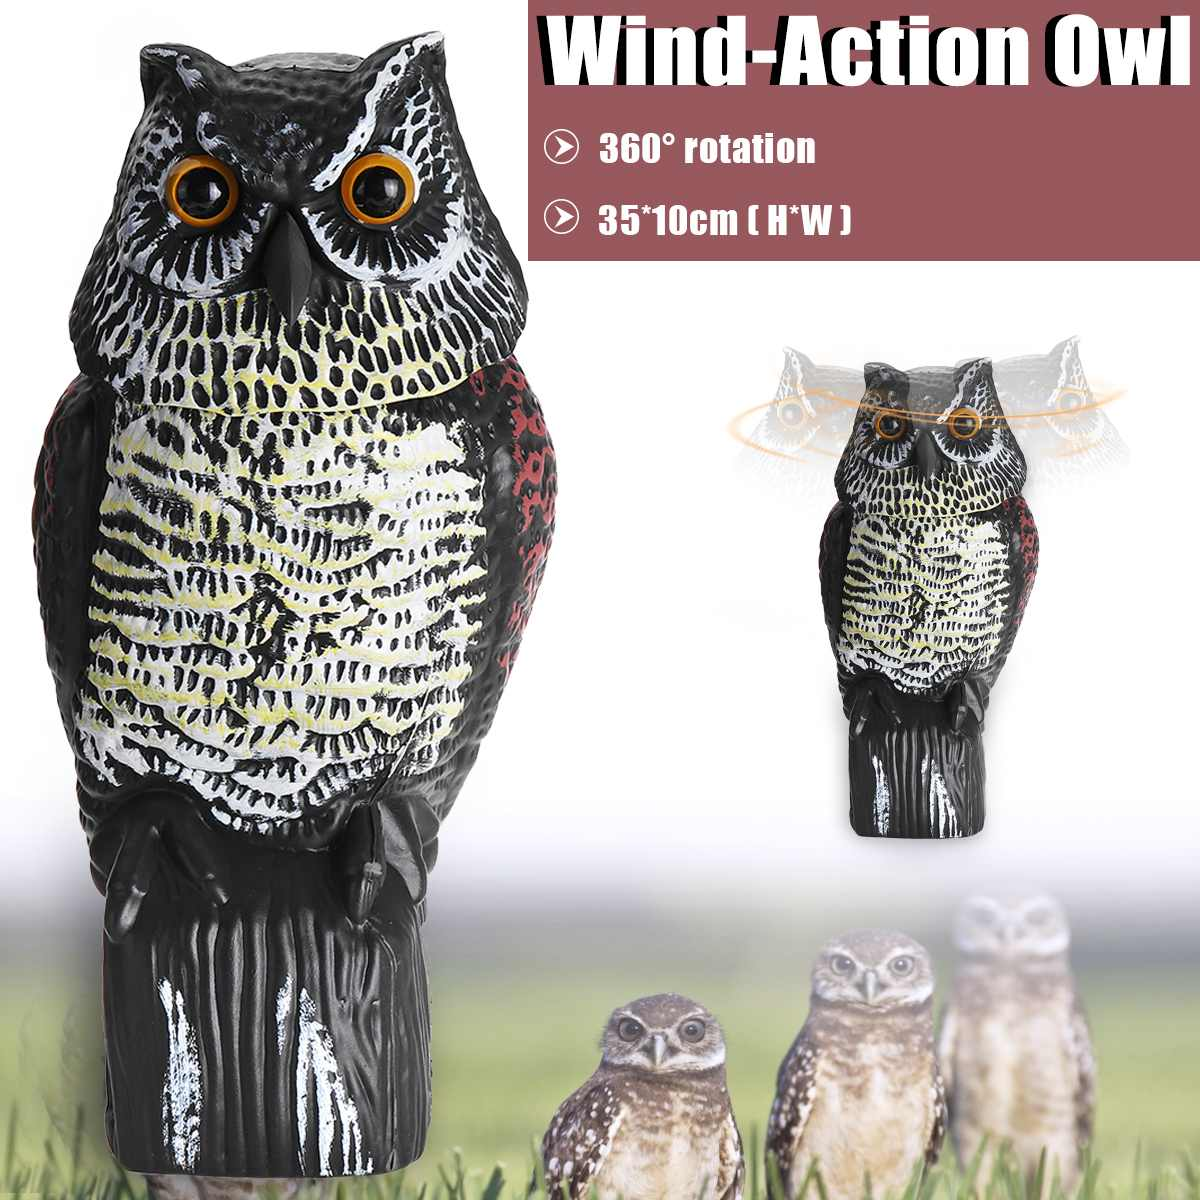 Realistic Bird Scarer Rotating Head Owl Decoy Protection Repellent Bird Pest Control Scarecrow Garden Yard DecorRealistic Bird Scarer Rotating Head Owl Decoy Protection Repellent Bird Pest Control Scarecrow Garden Yard Decor